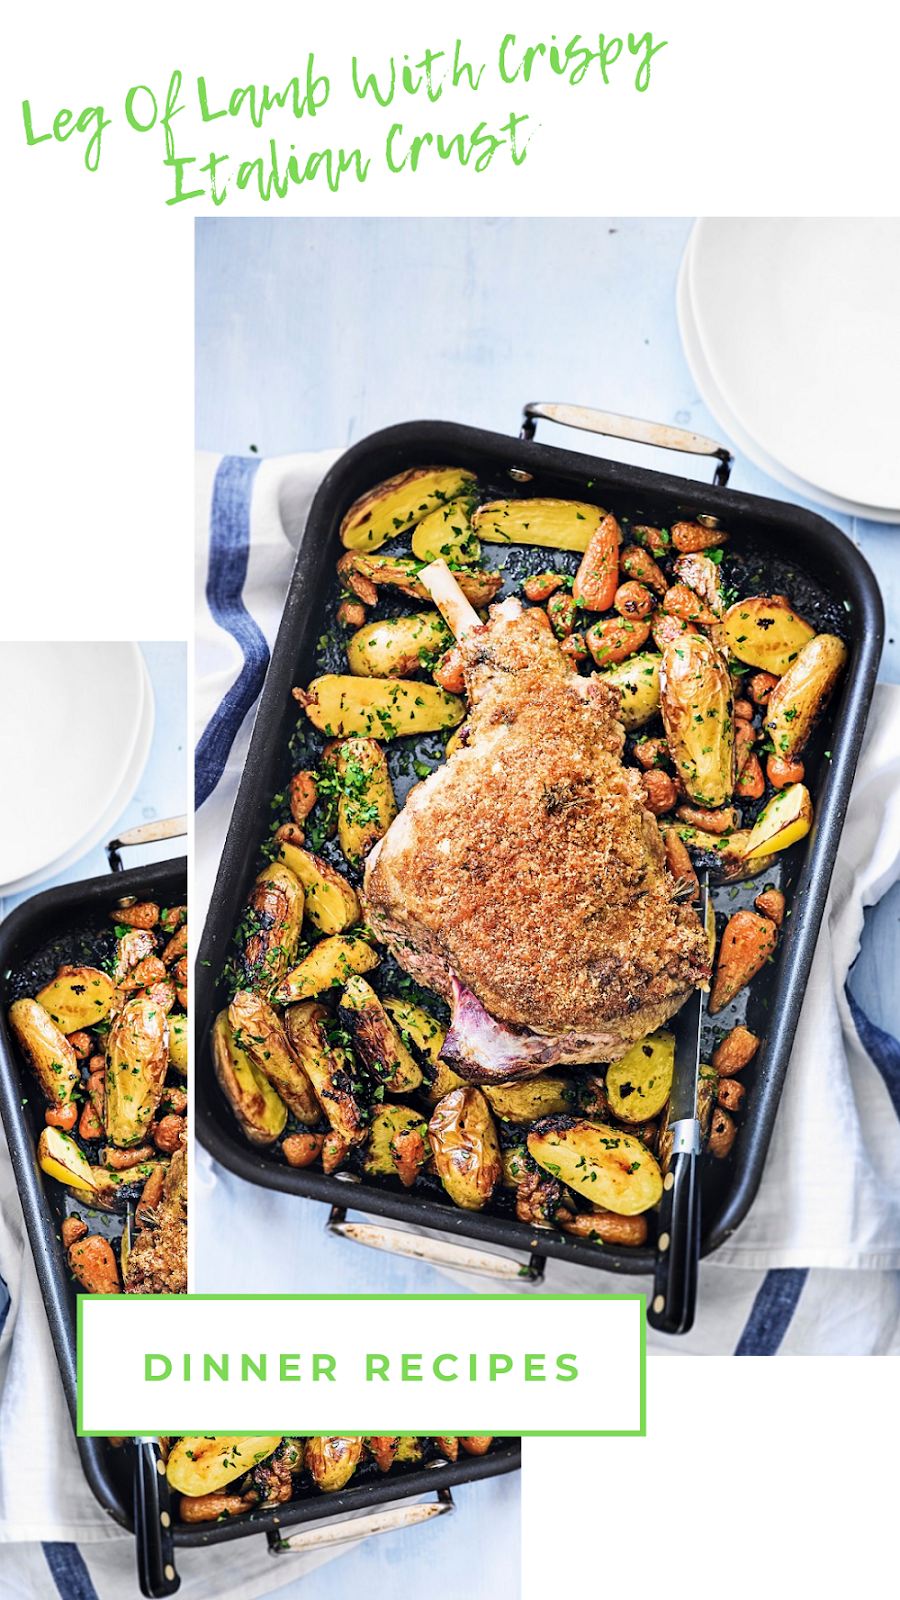 Leg Of Lamb With Crispy Italian Crust